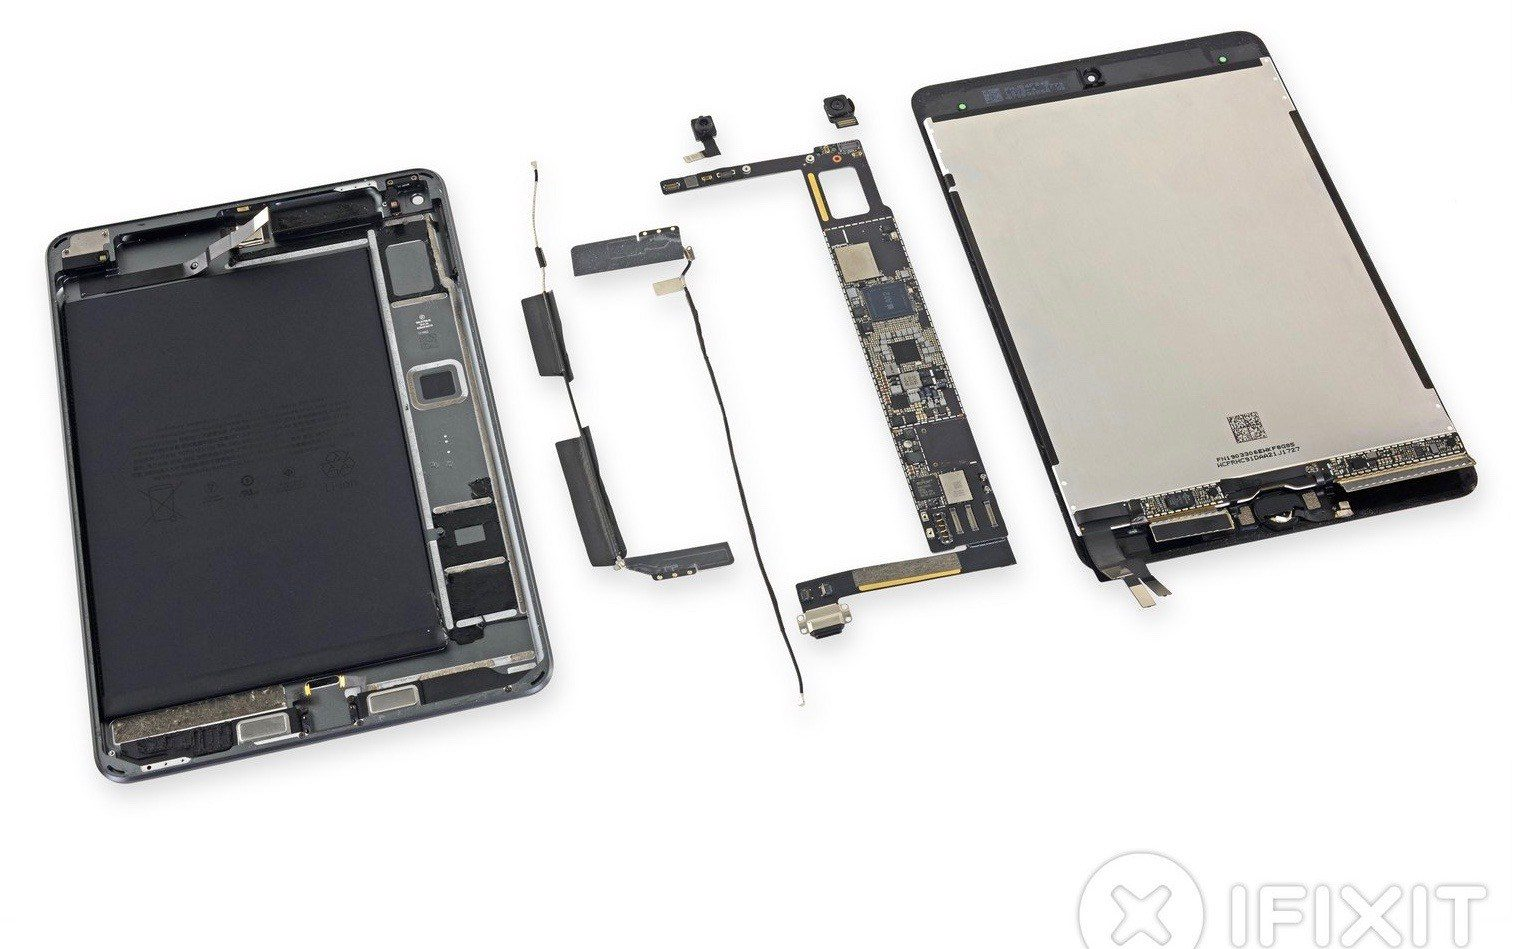 iPad Mini 5 teardown